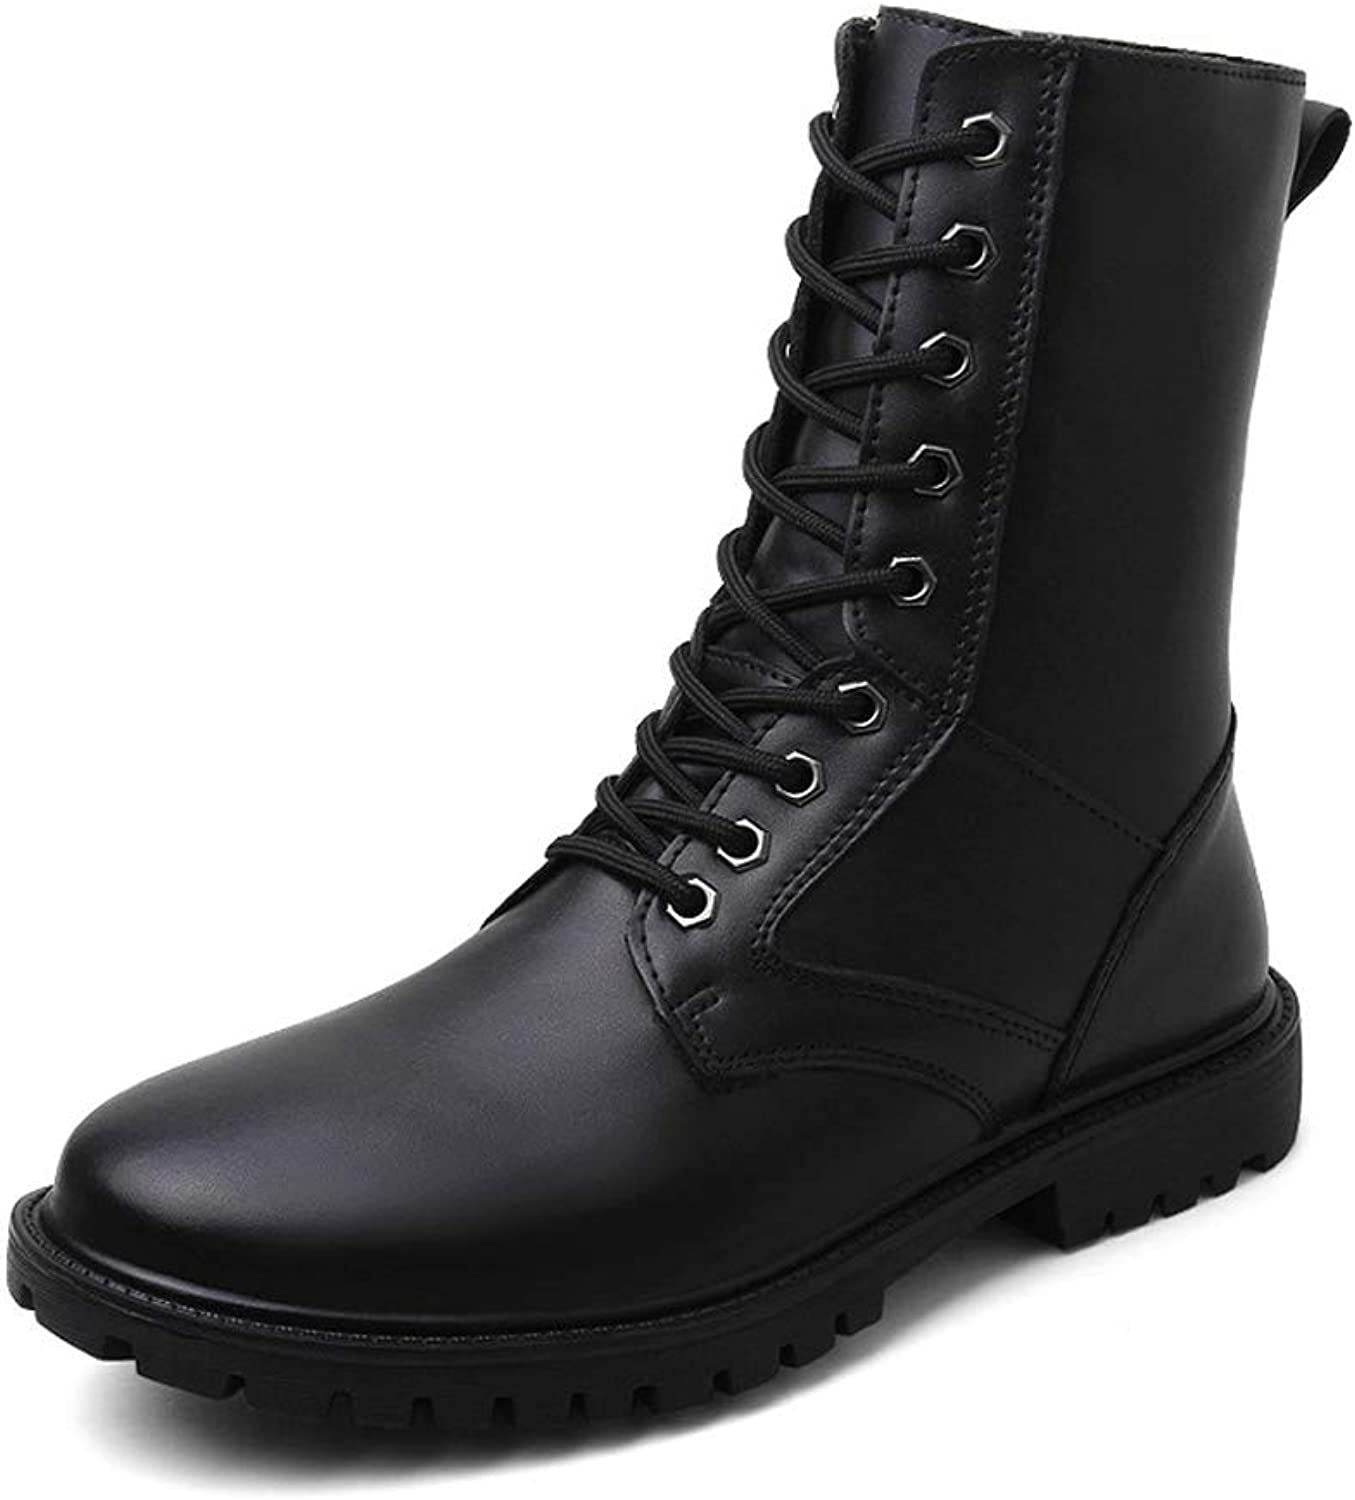 XHD-Men's shoes Men's Personality Fashion Mid-Calf Boots Genuine Leather High Top Military shoes (Warm Fleece Lined Optional)